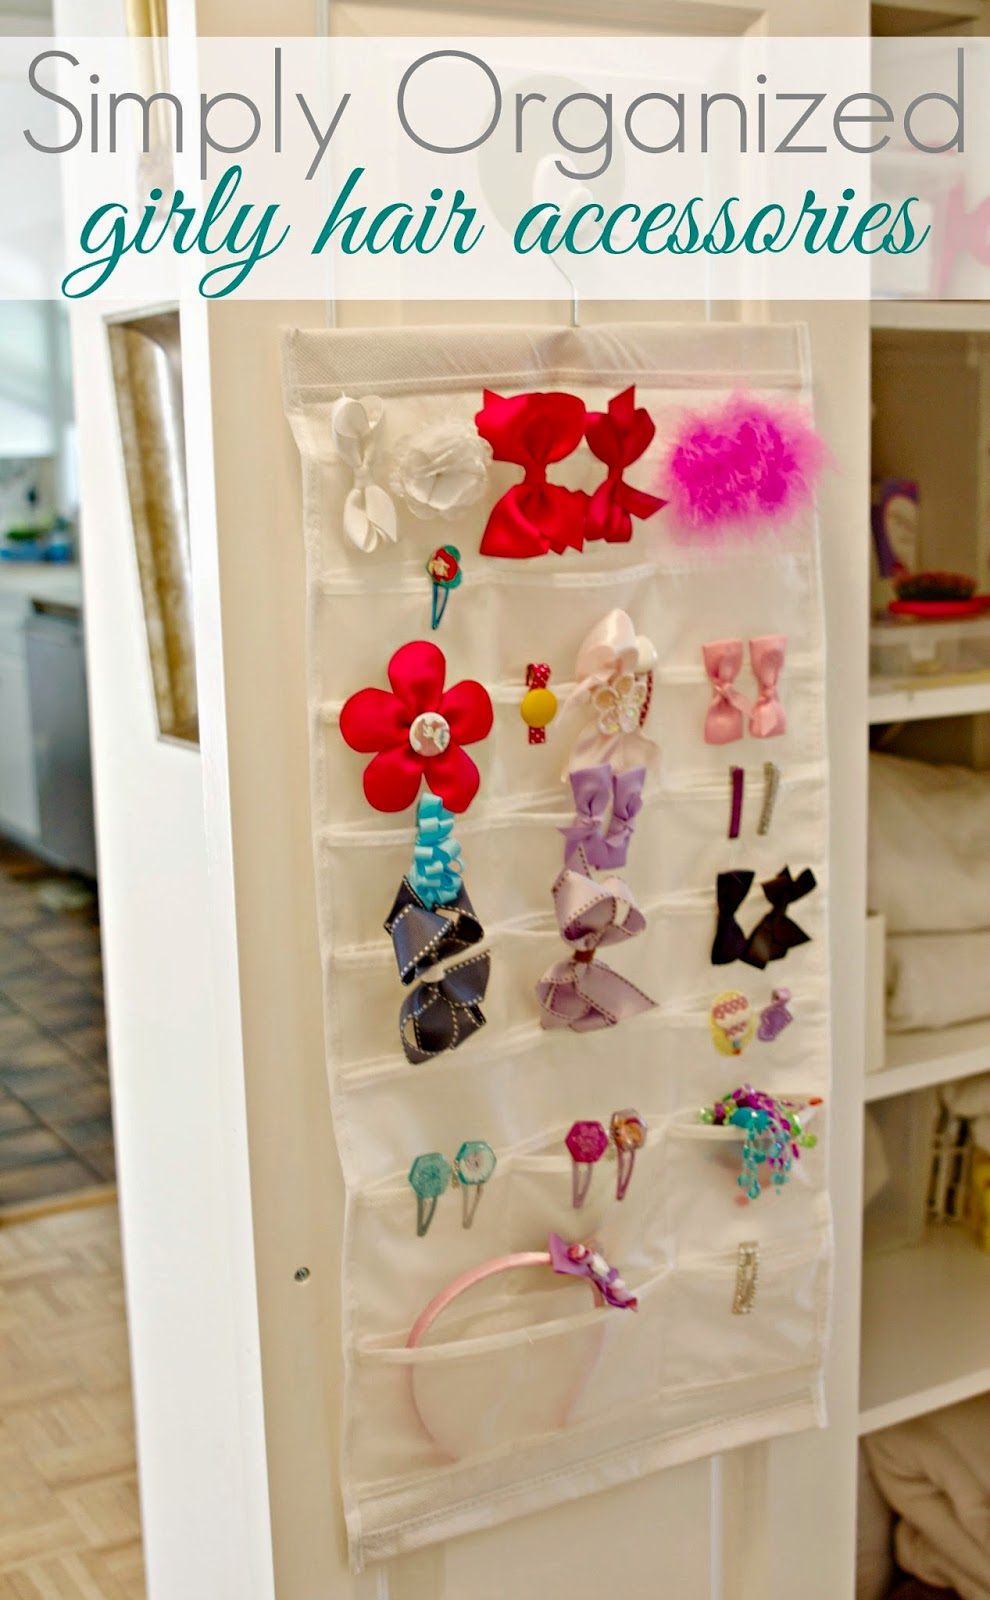 Simply Organized Organized Little Girl Hair Accessories